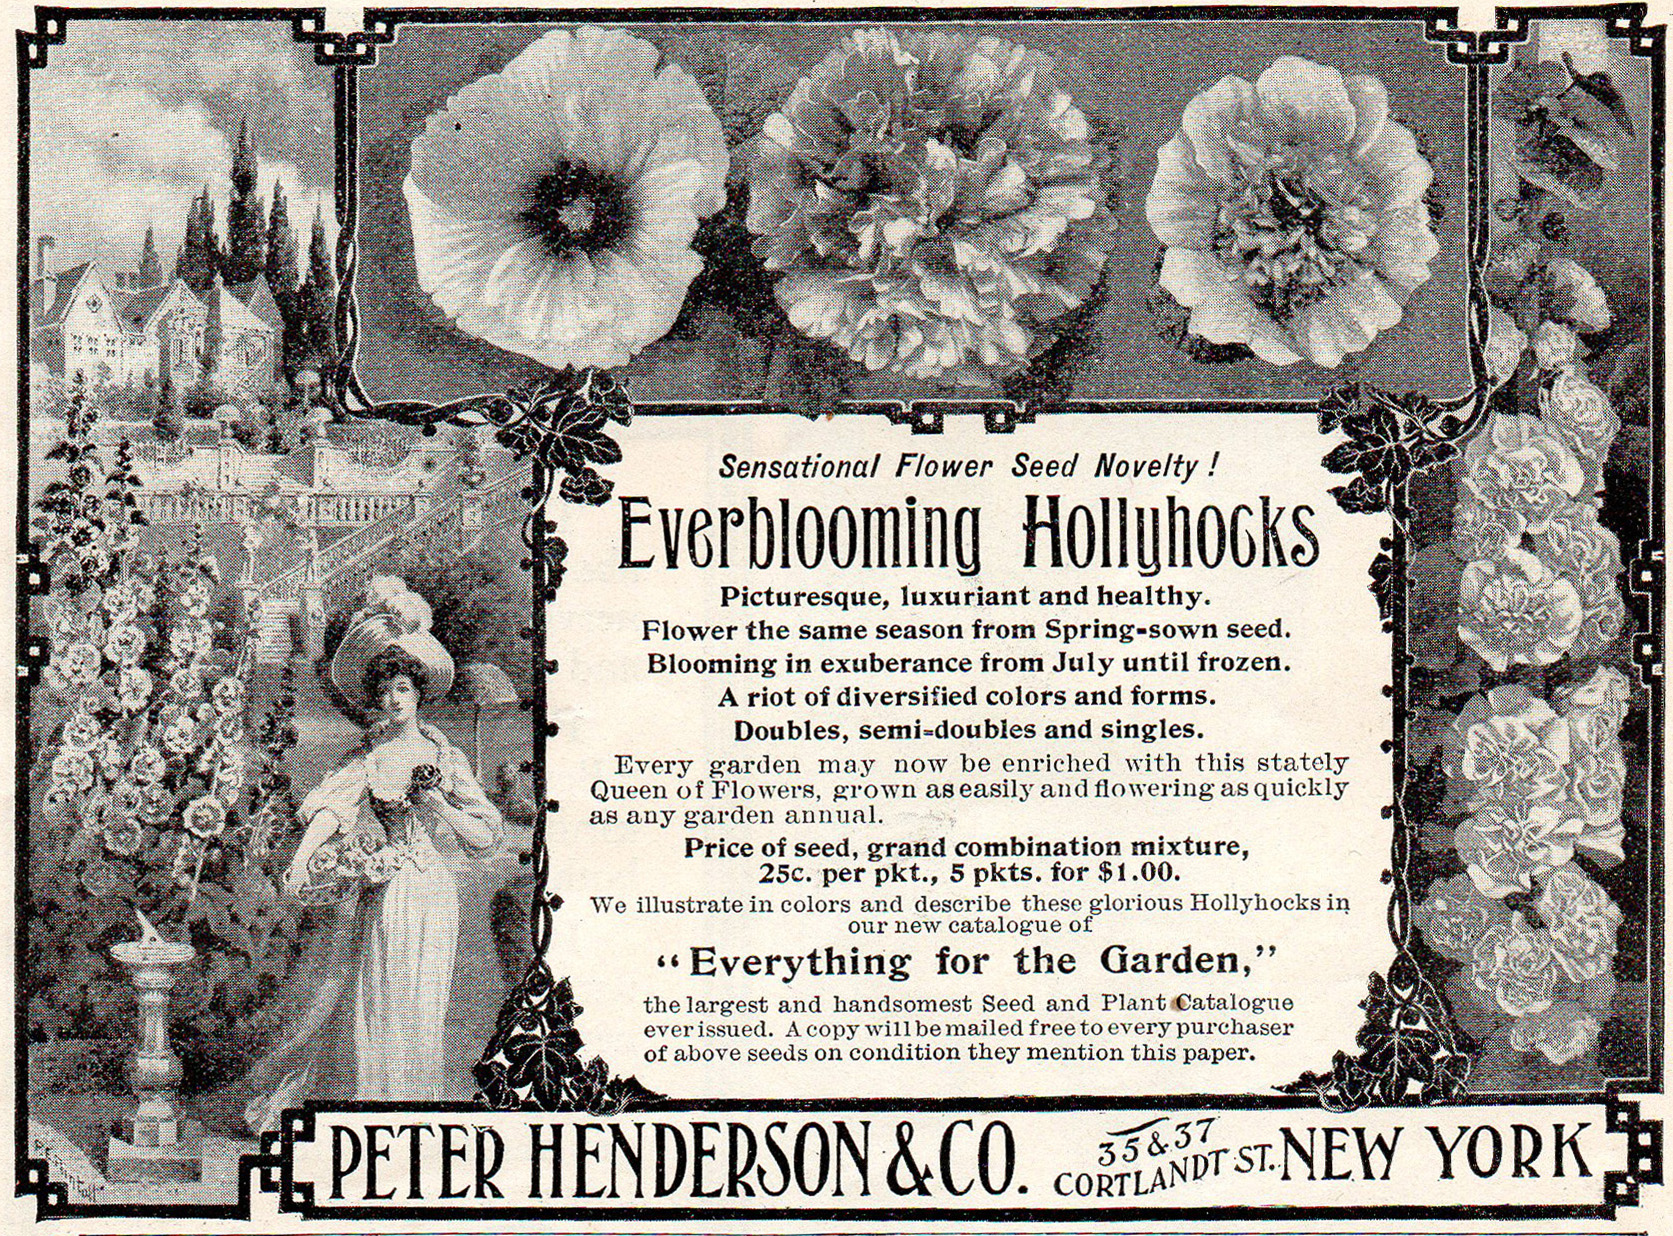 Peter Henderson Seed Company ad in Harper's